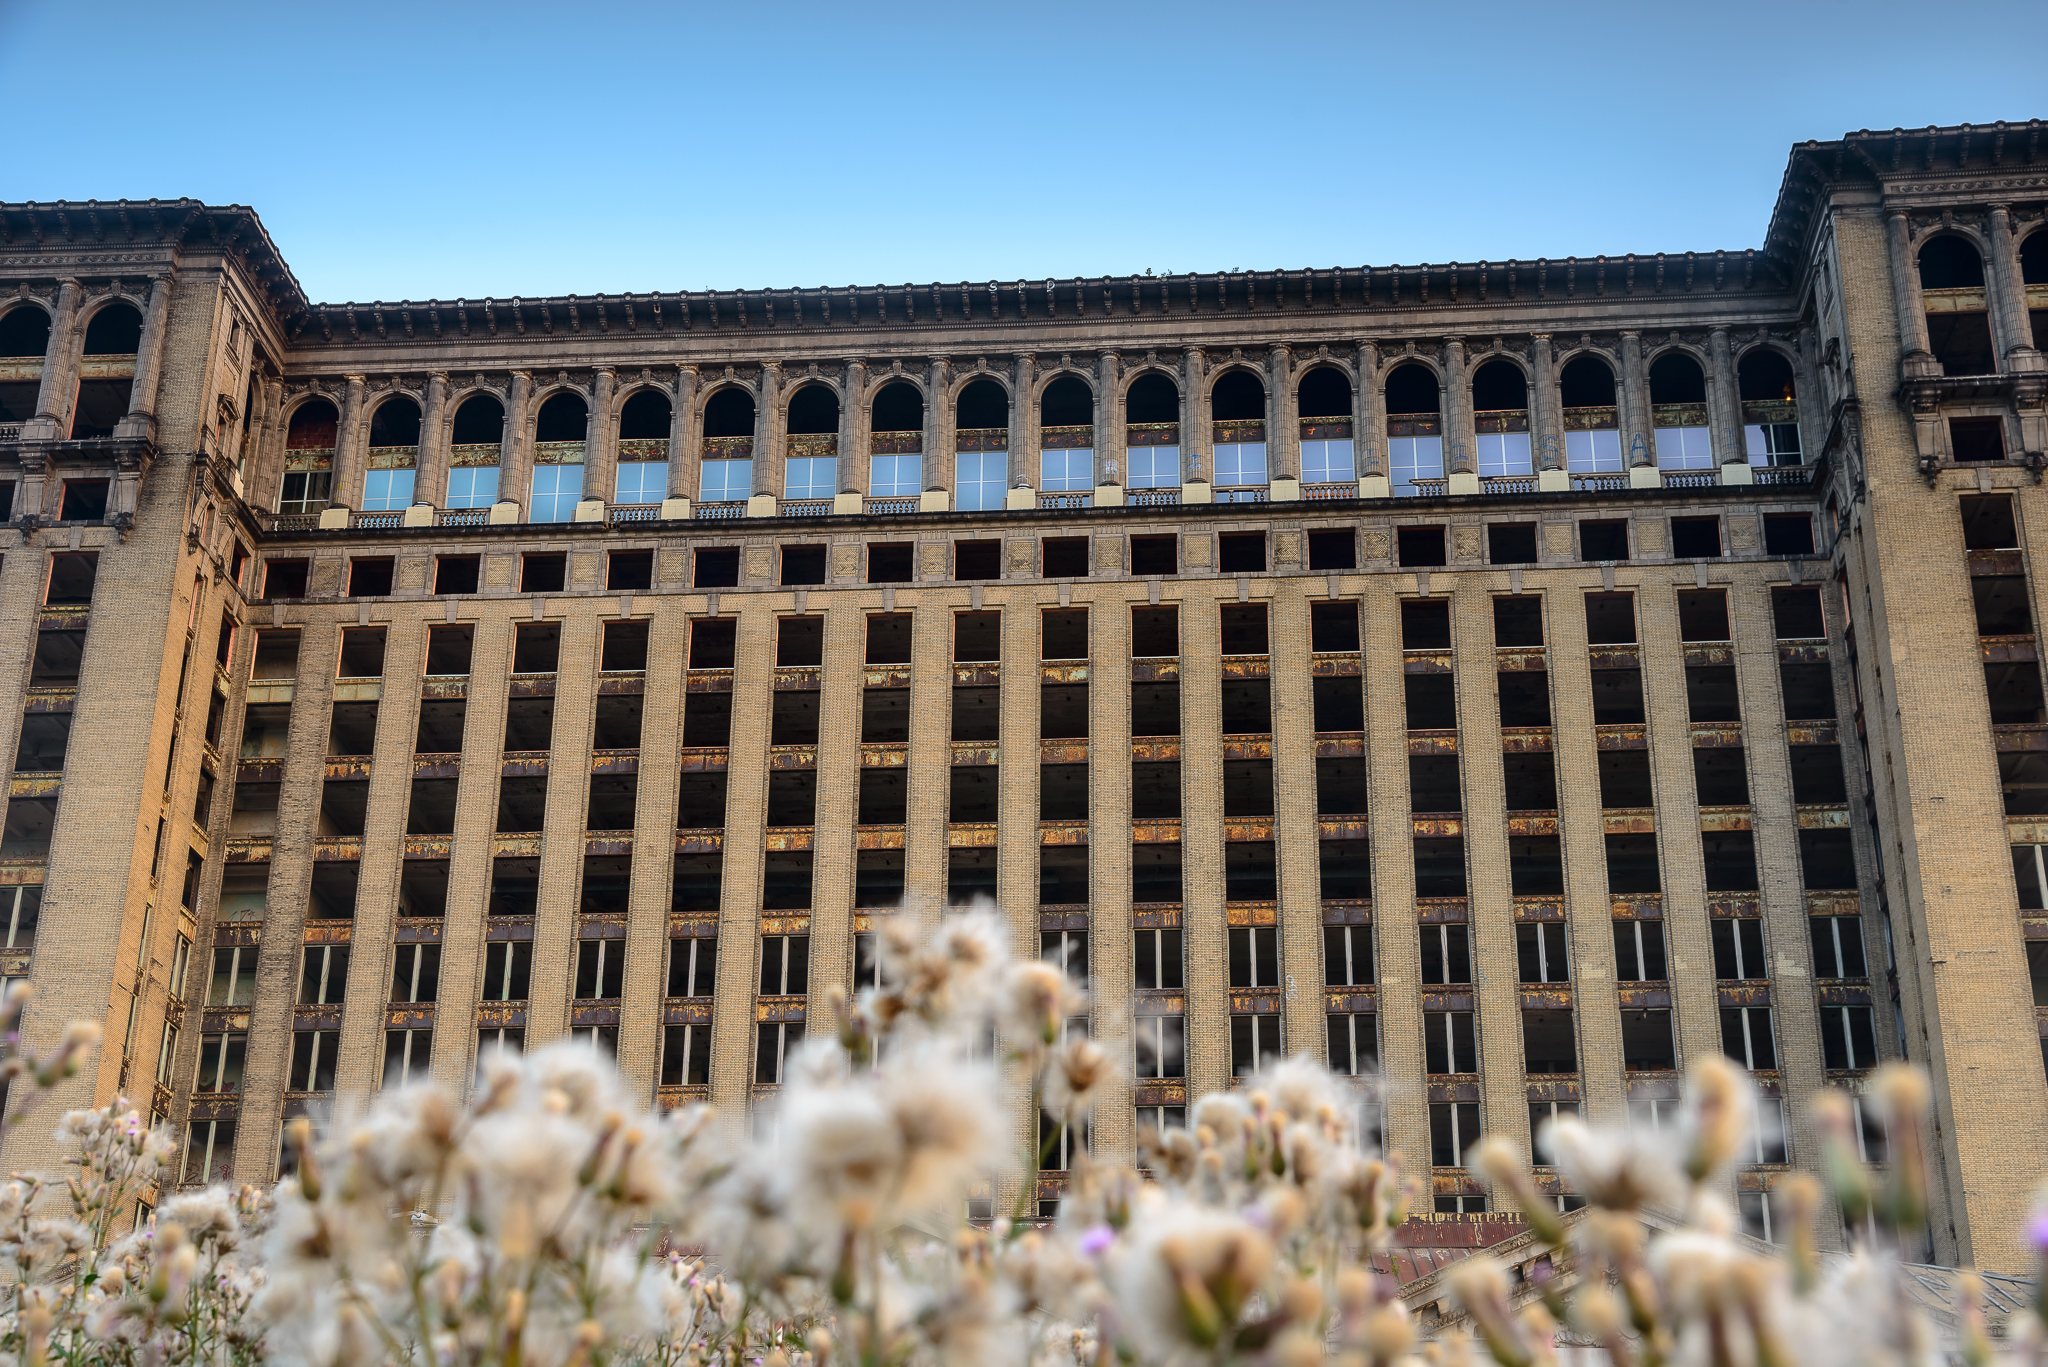 7/3/15. This is honestly a historic image. Abandoned for over 25 years, Detroit's symbol of urban decay Michigan Central Station received it's FIRST FULL SET of windows. The change was real.